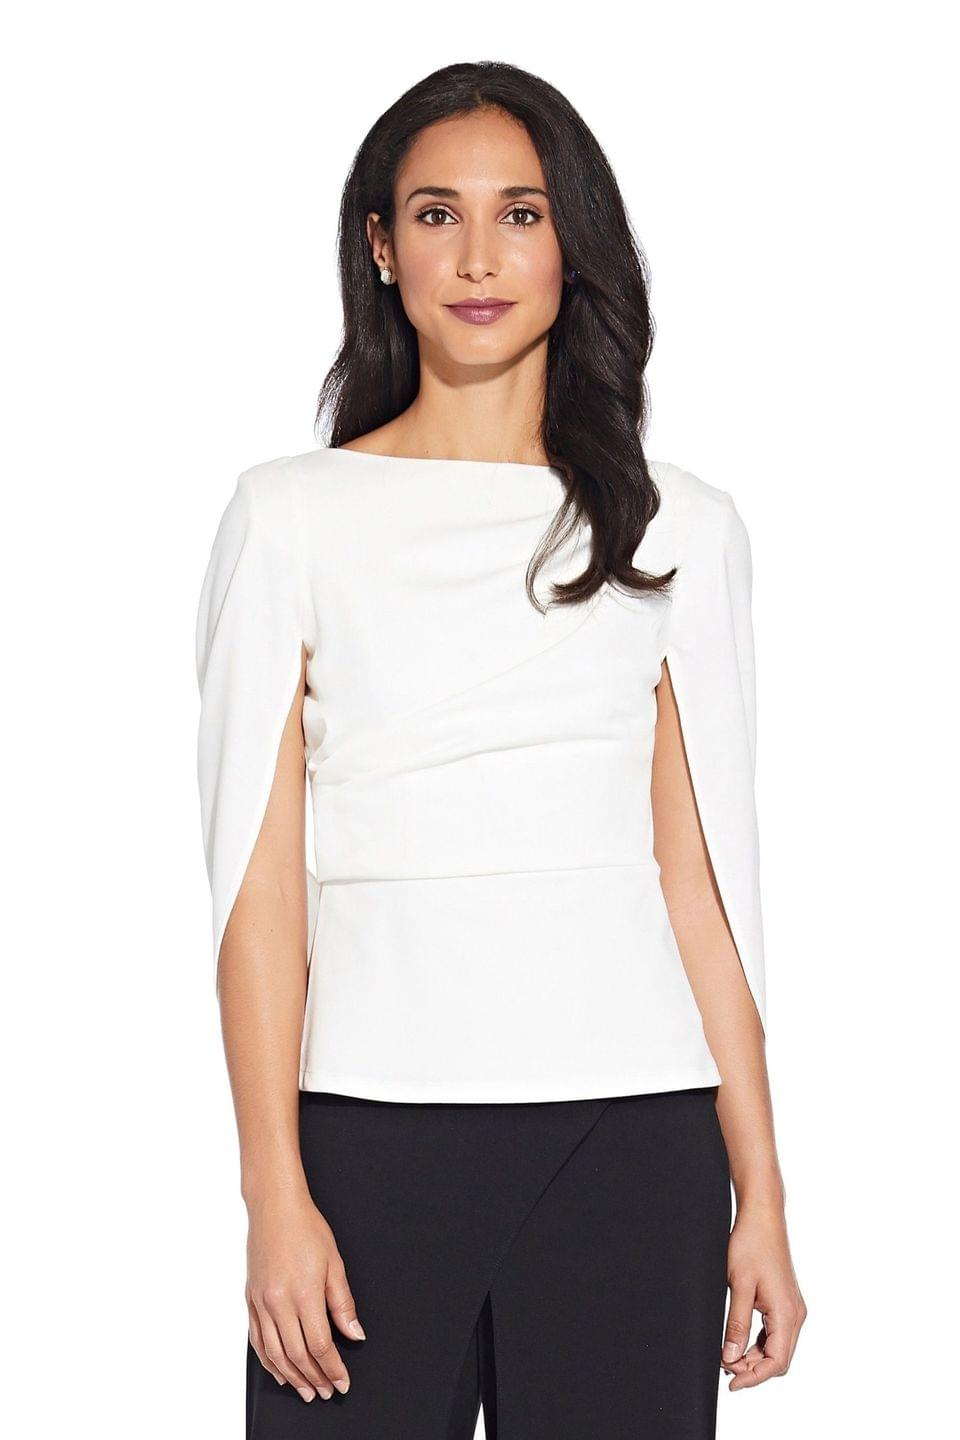 Women's Adrianna Papell White Cowl Crepe Cape Top